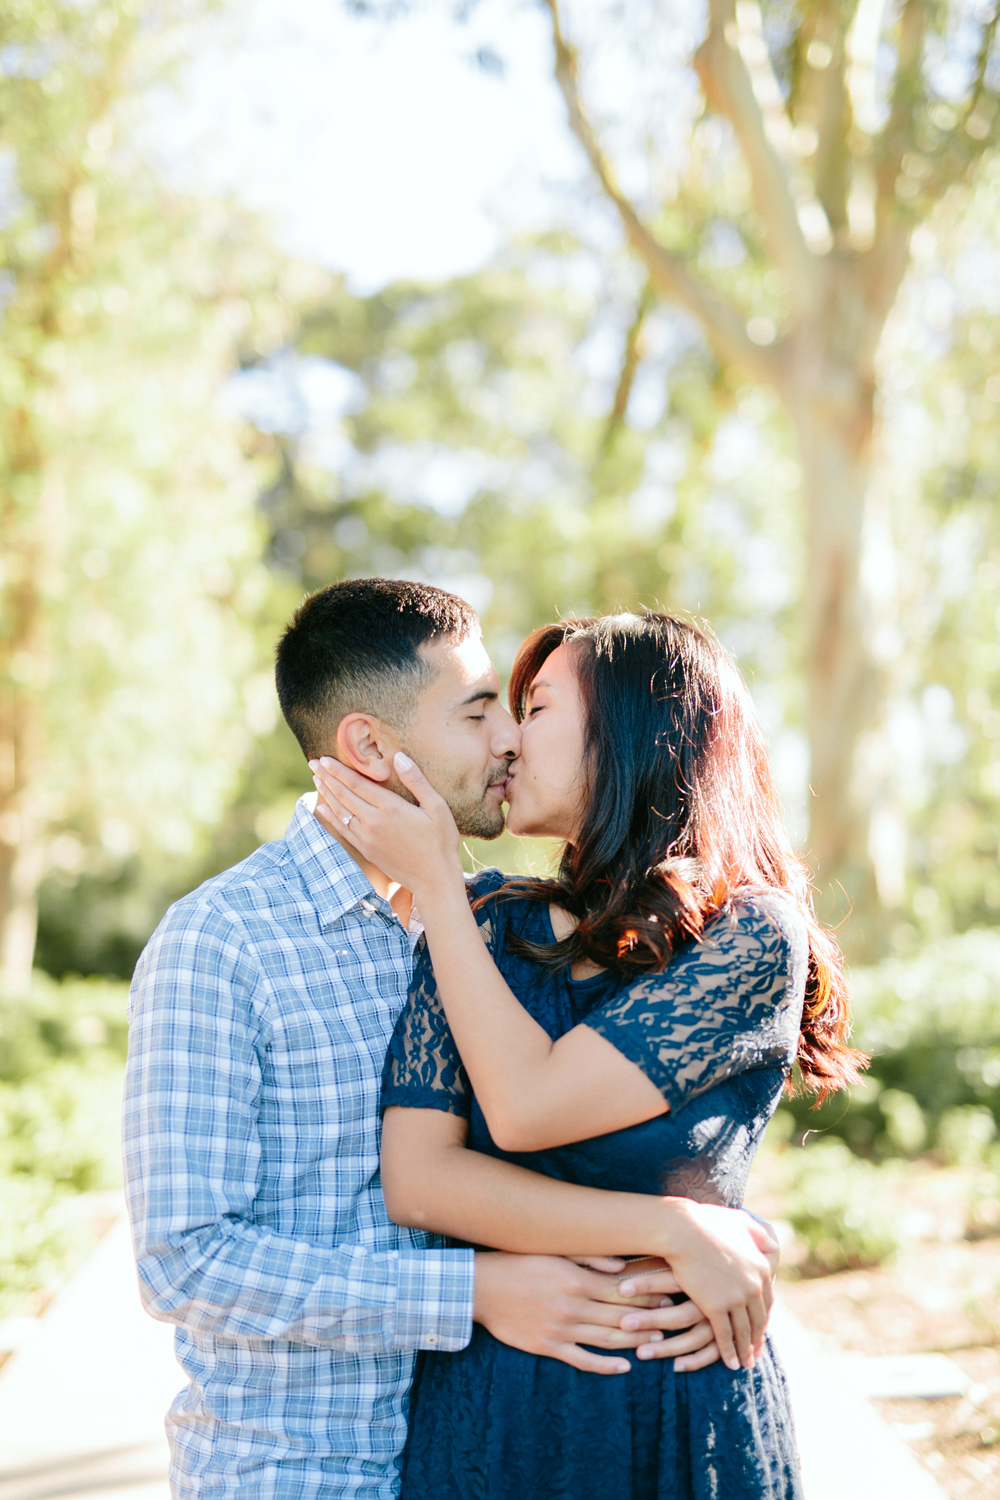 schyne-photography_engagement-photos_melvin-and-jessica_12